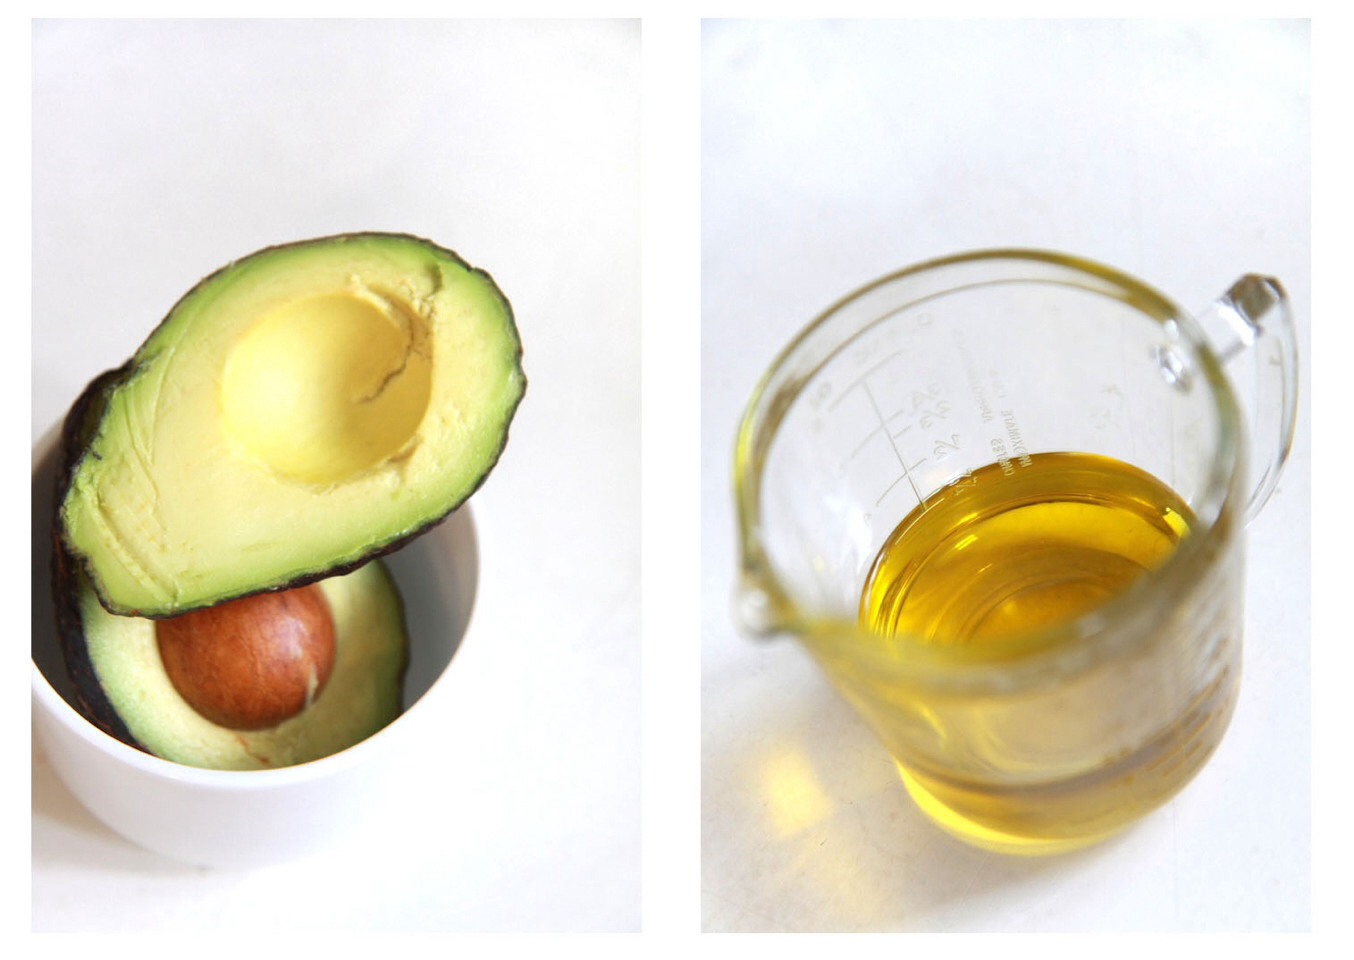 Hair Care Tip---For shiny and healthy hair, mash up an avocado, mix it with a tablespoon of olive oil, and rub it through your hair.  Wash your hair after 15 minutes.